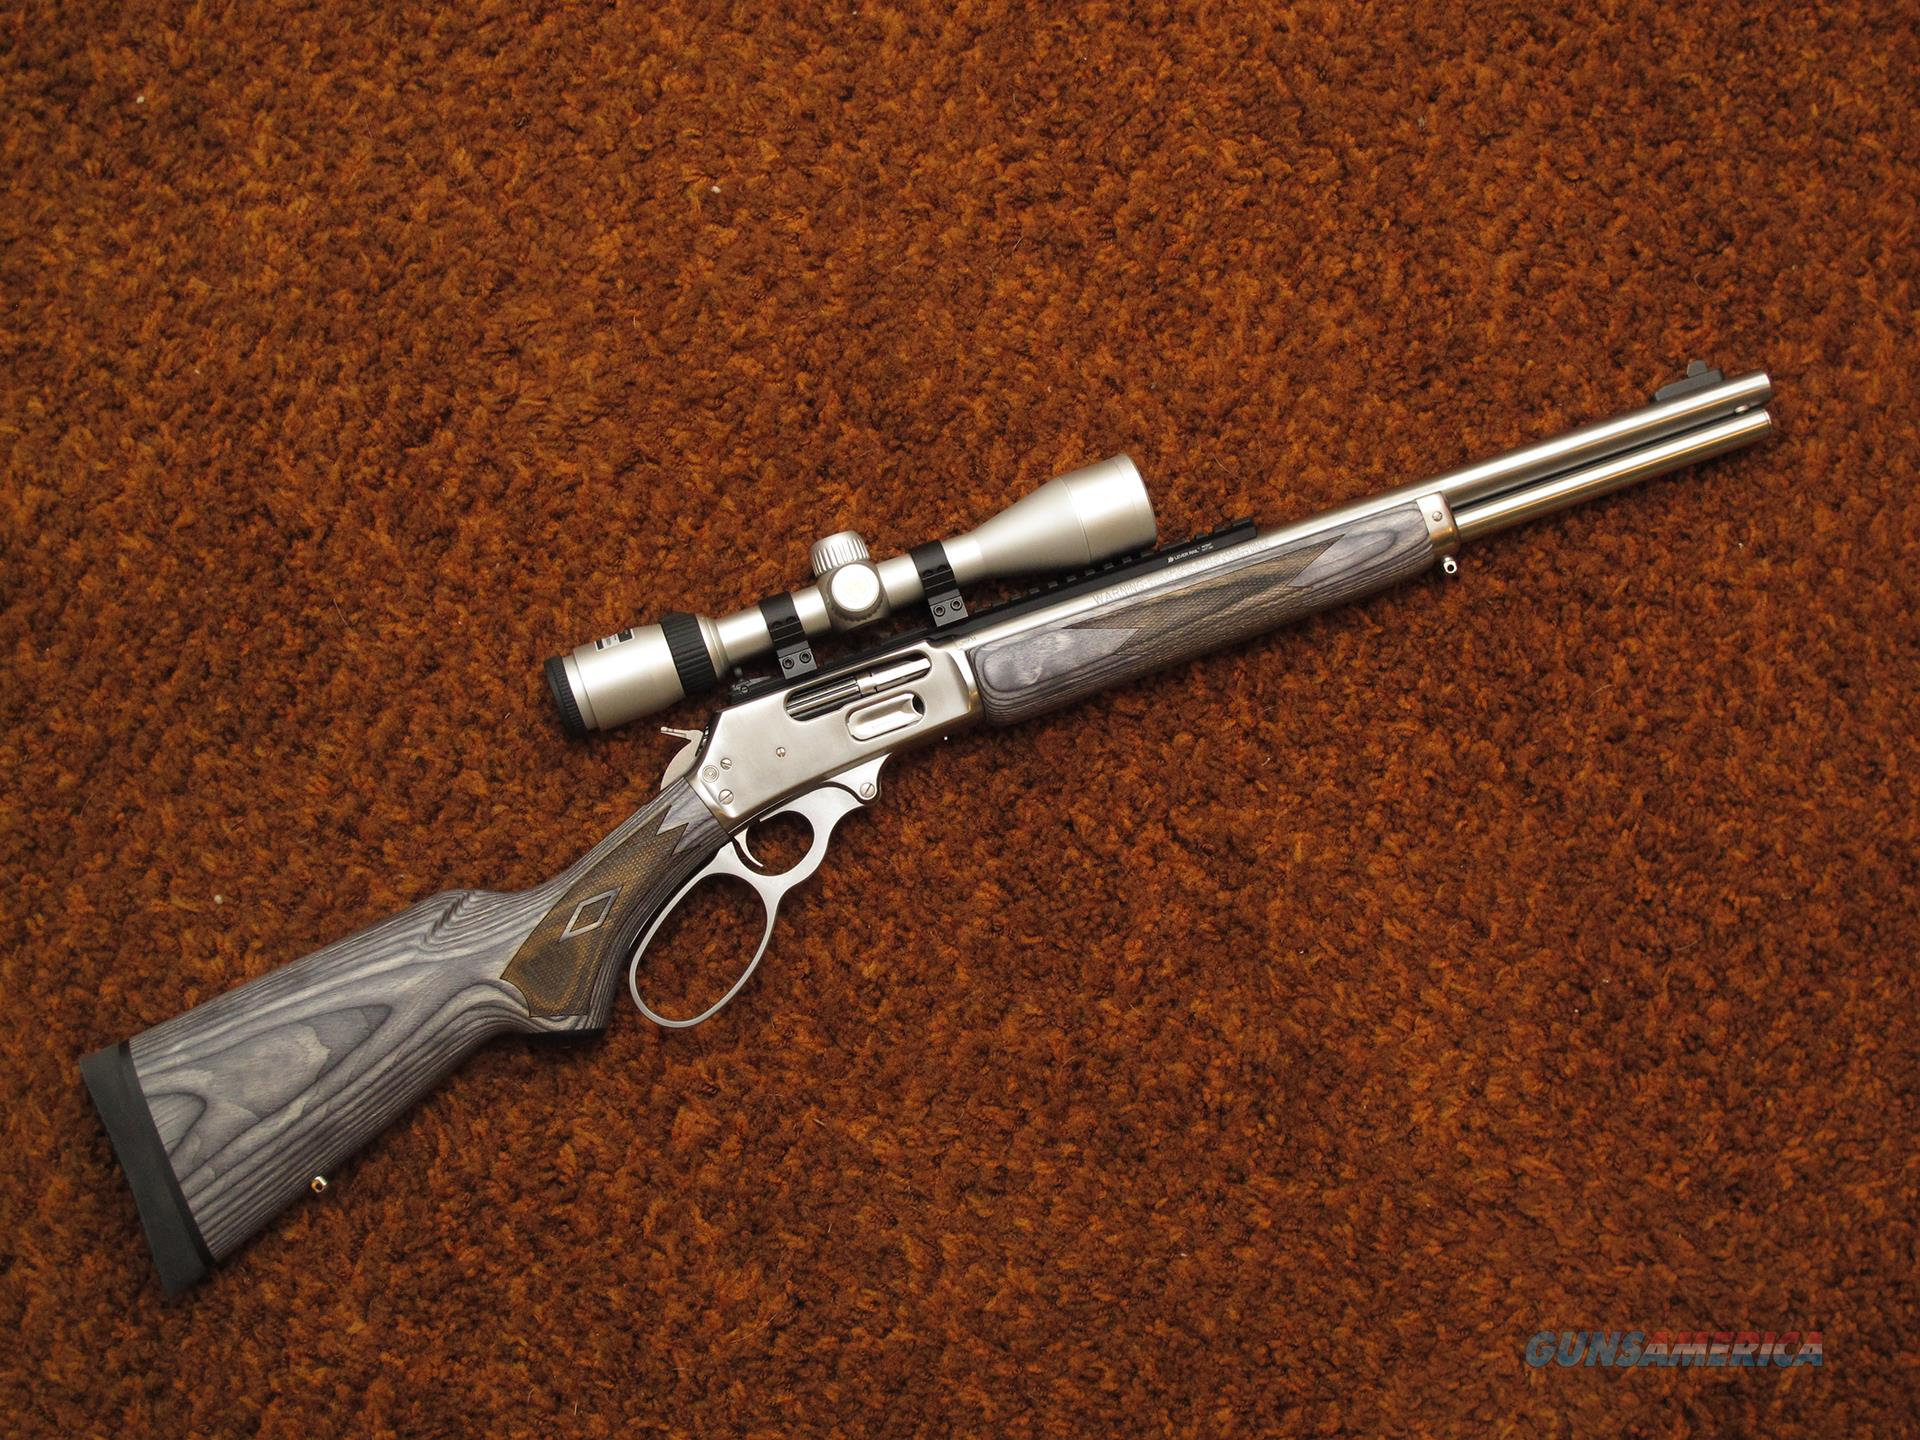 Marlin 1895 Stainless 1895SBL lever action 45-70 with Scope   Guns > Rifles > Marlin Rifles > Modern > Lever Action